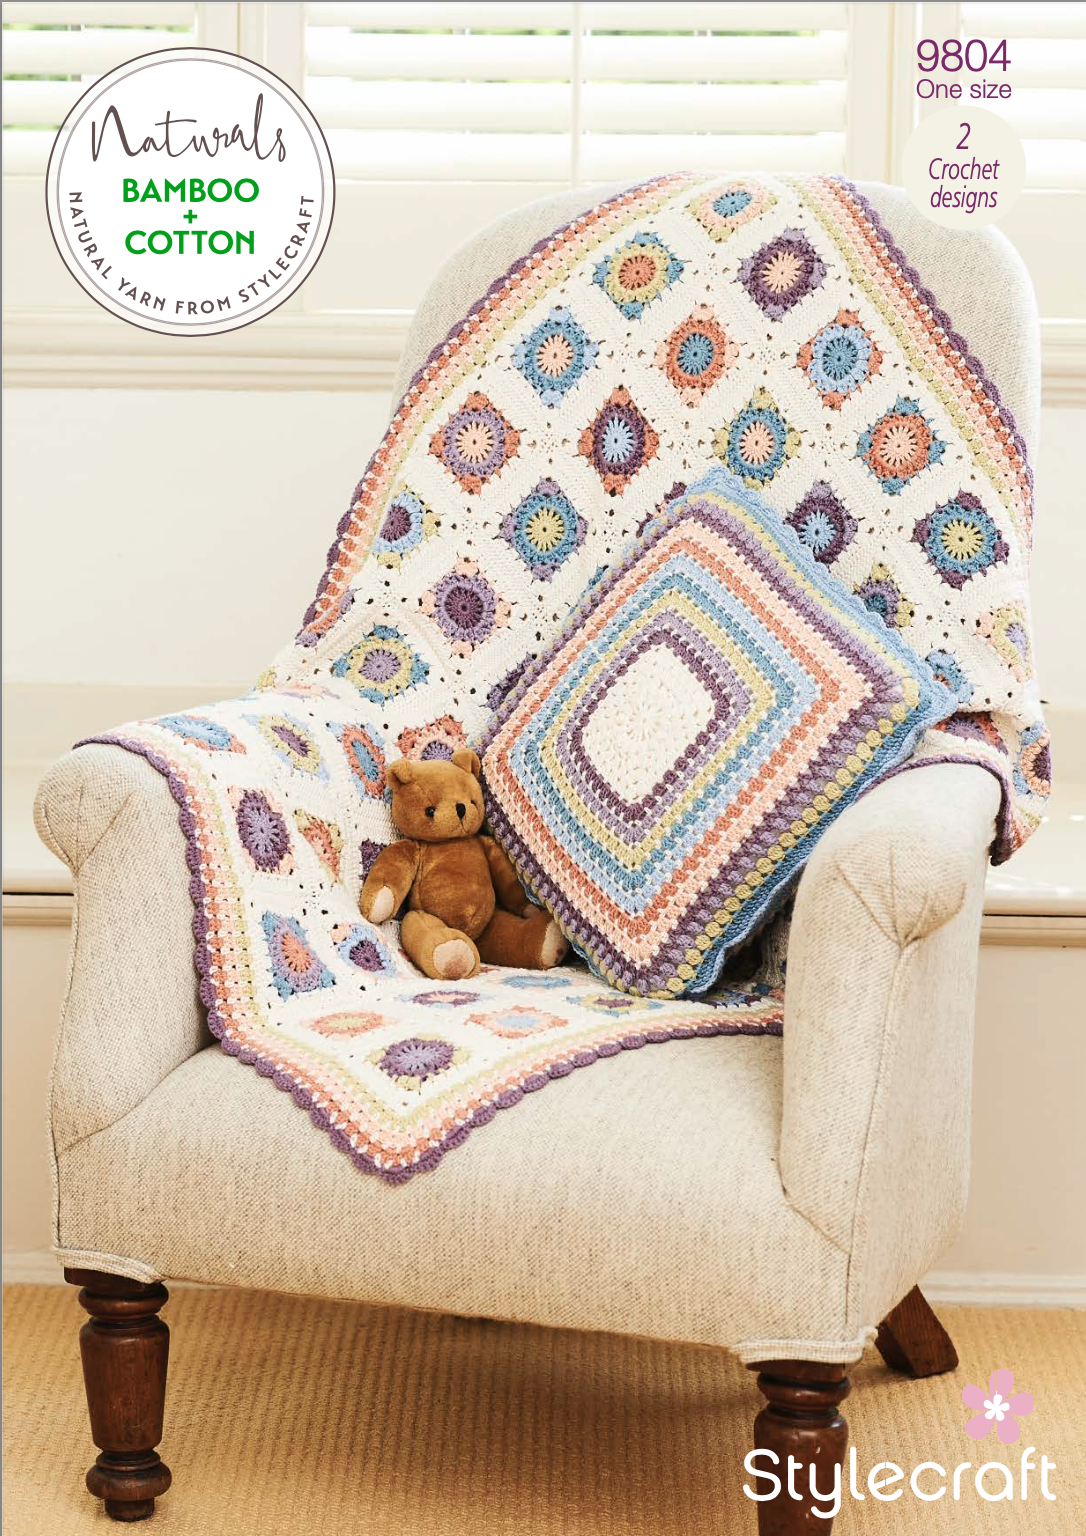 Stylecraft Pattern Naturals Bamboo+Cotton 9804 (download) product image